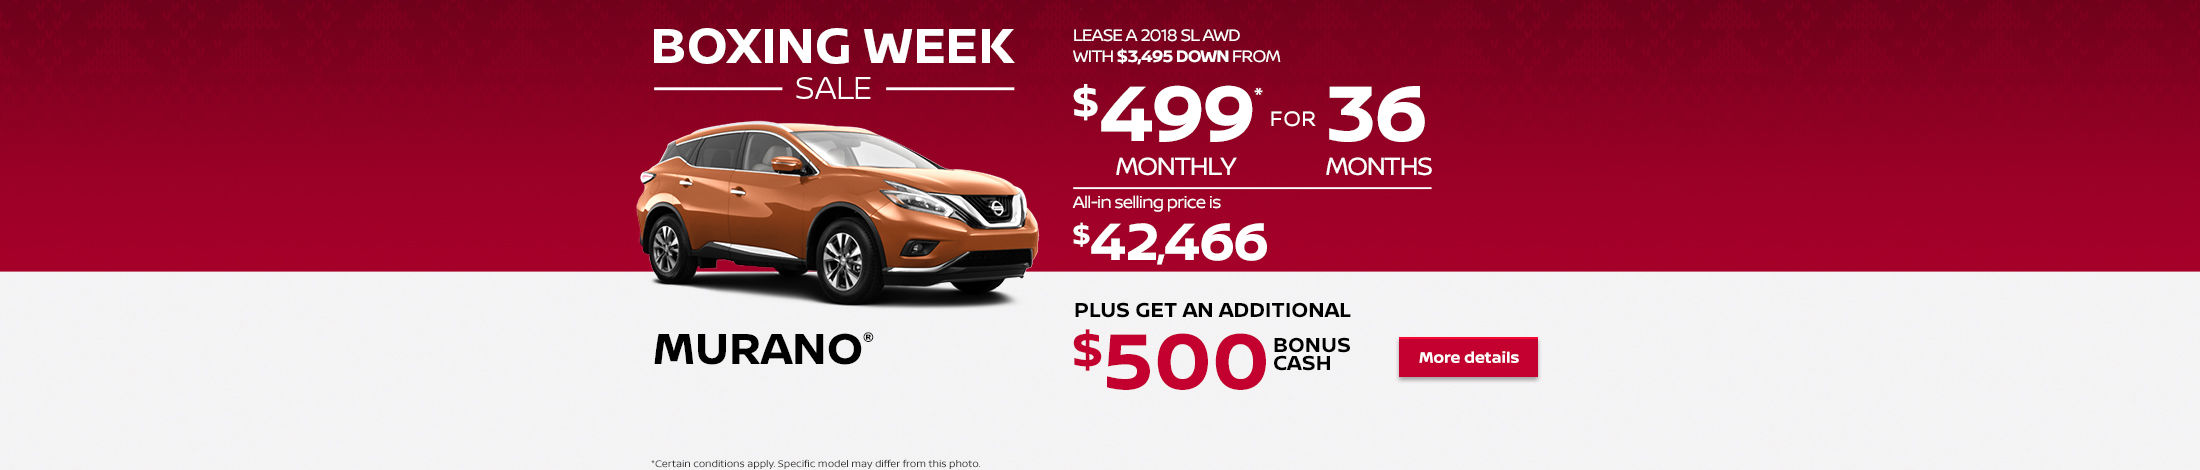 Nissan Boxing Week Sale Event (Betty-NS)